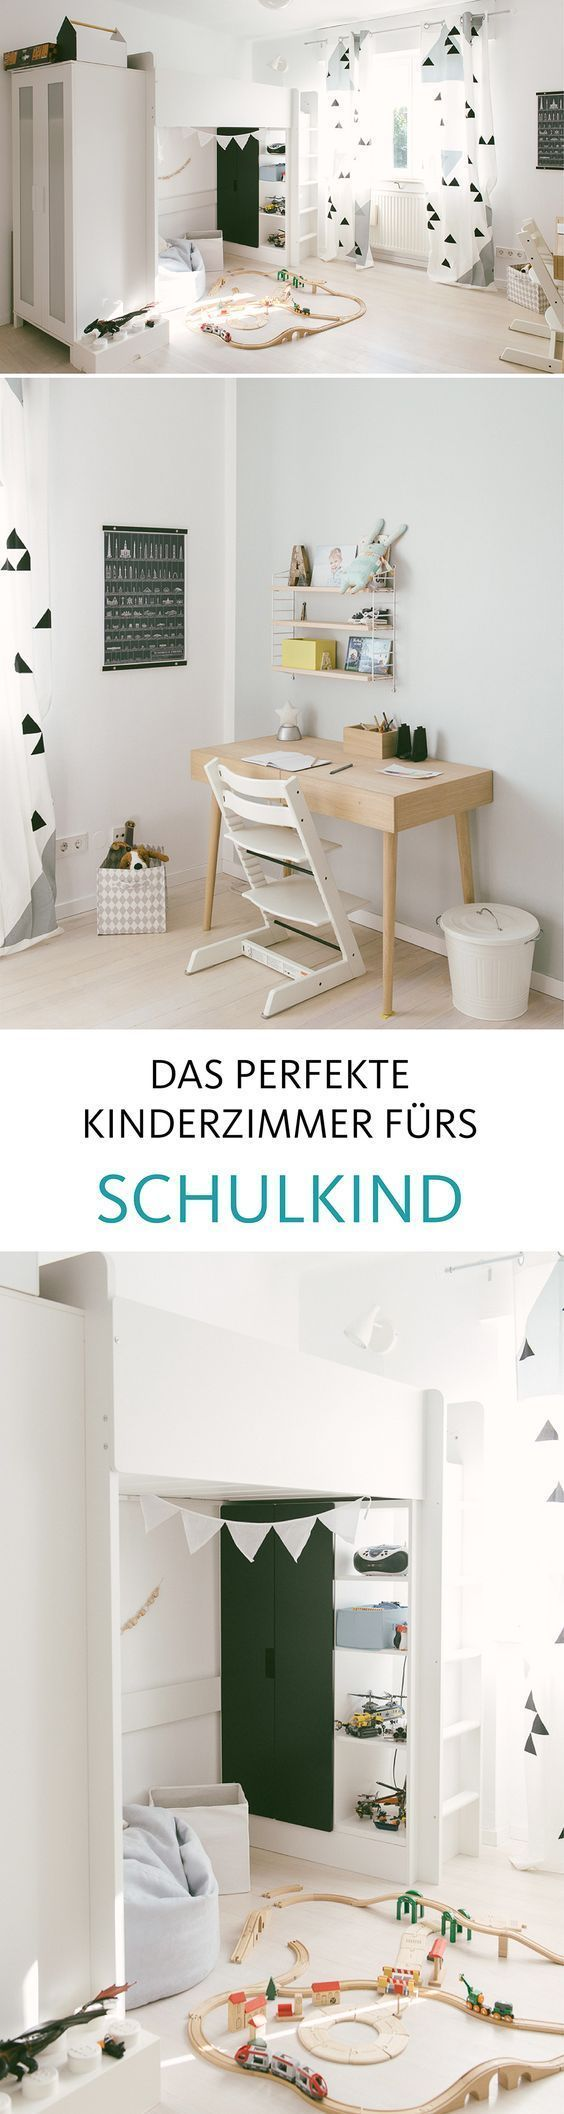 kinderzimmer gem tlich einrichten so geht 39 s ideen f r das kinderzimmer pinterest. Black Bedroom Furniture Sets. Home Design Ideas